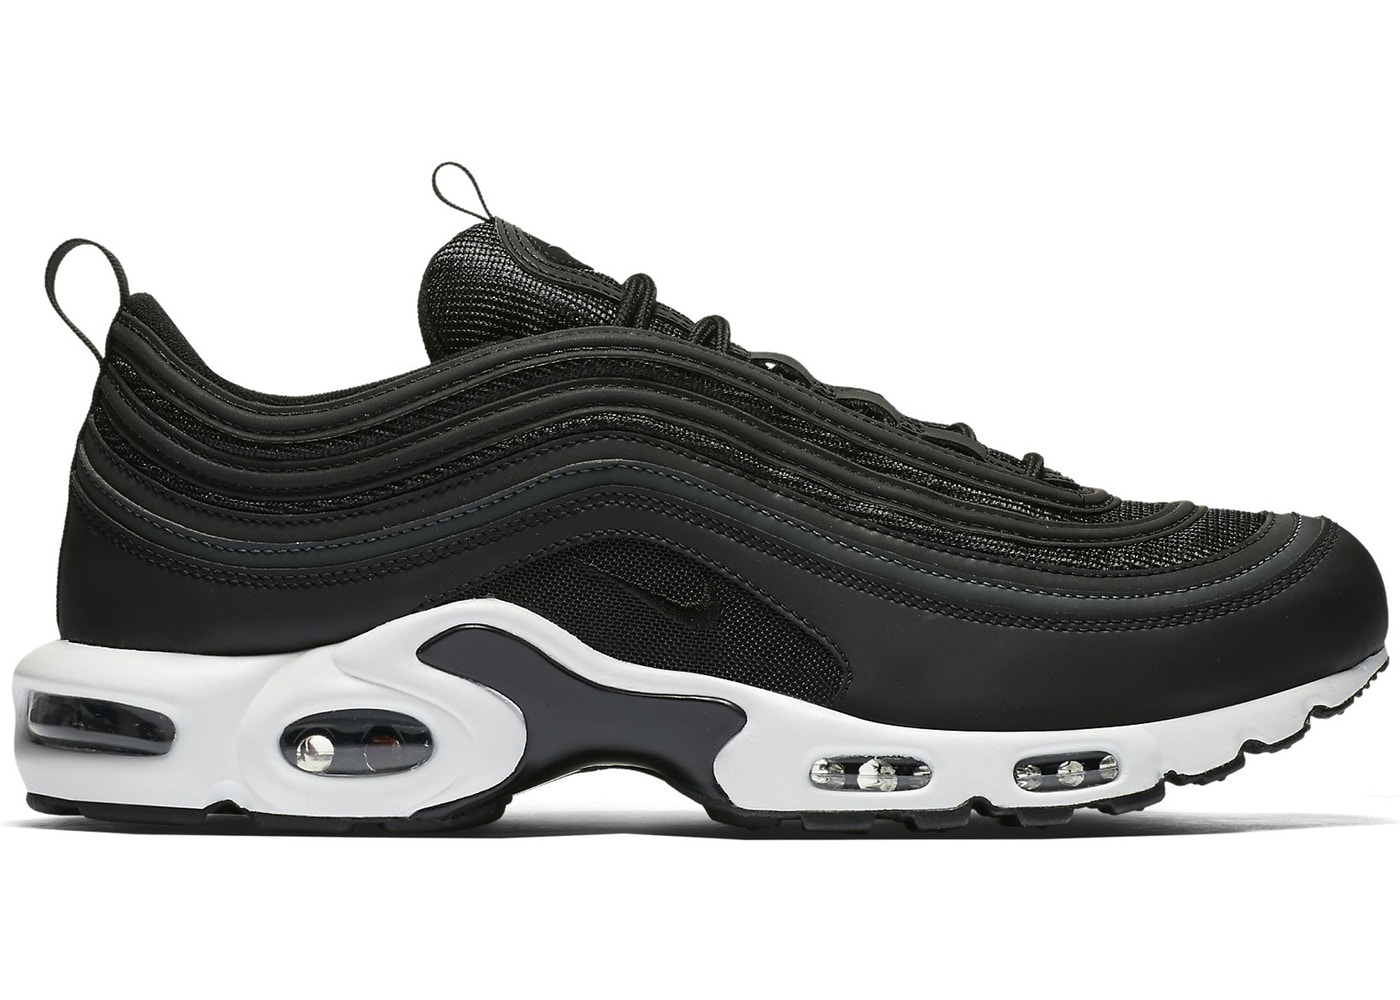 Air Max Plus 97 Black White